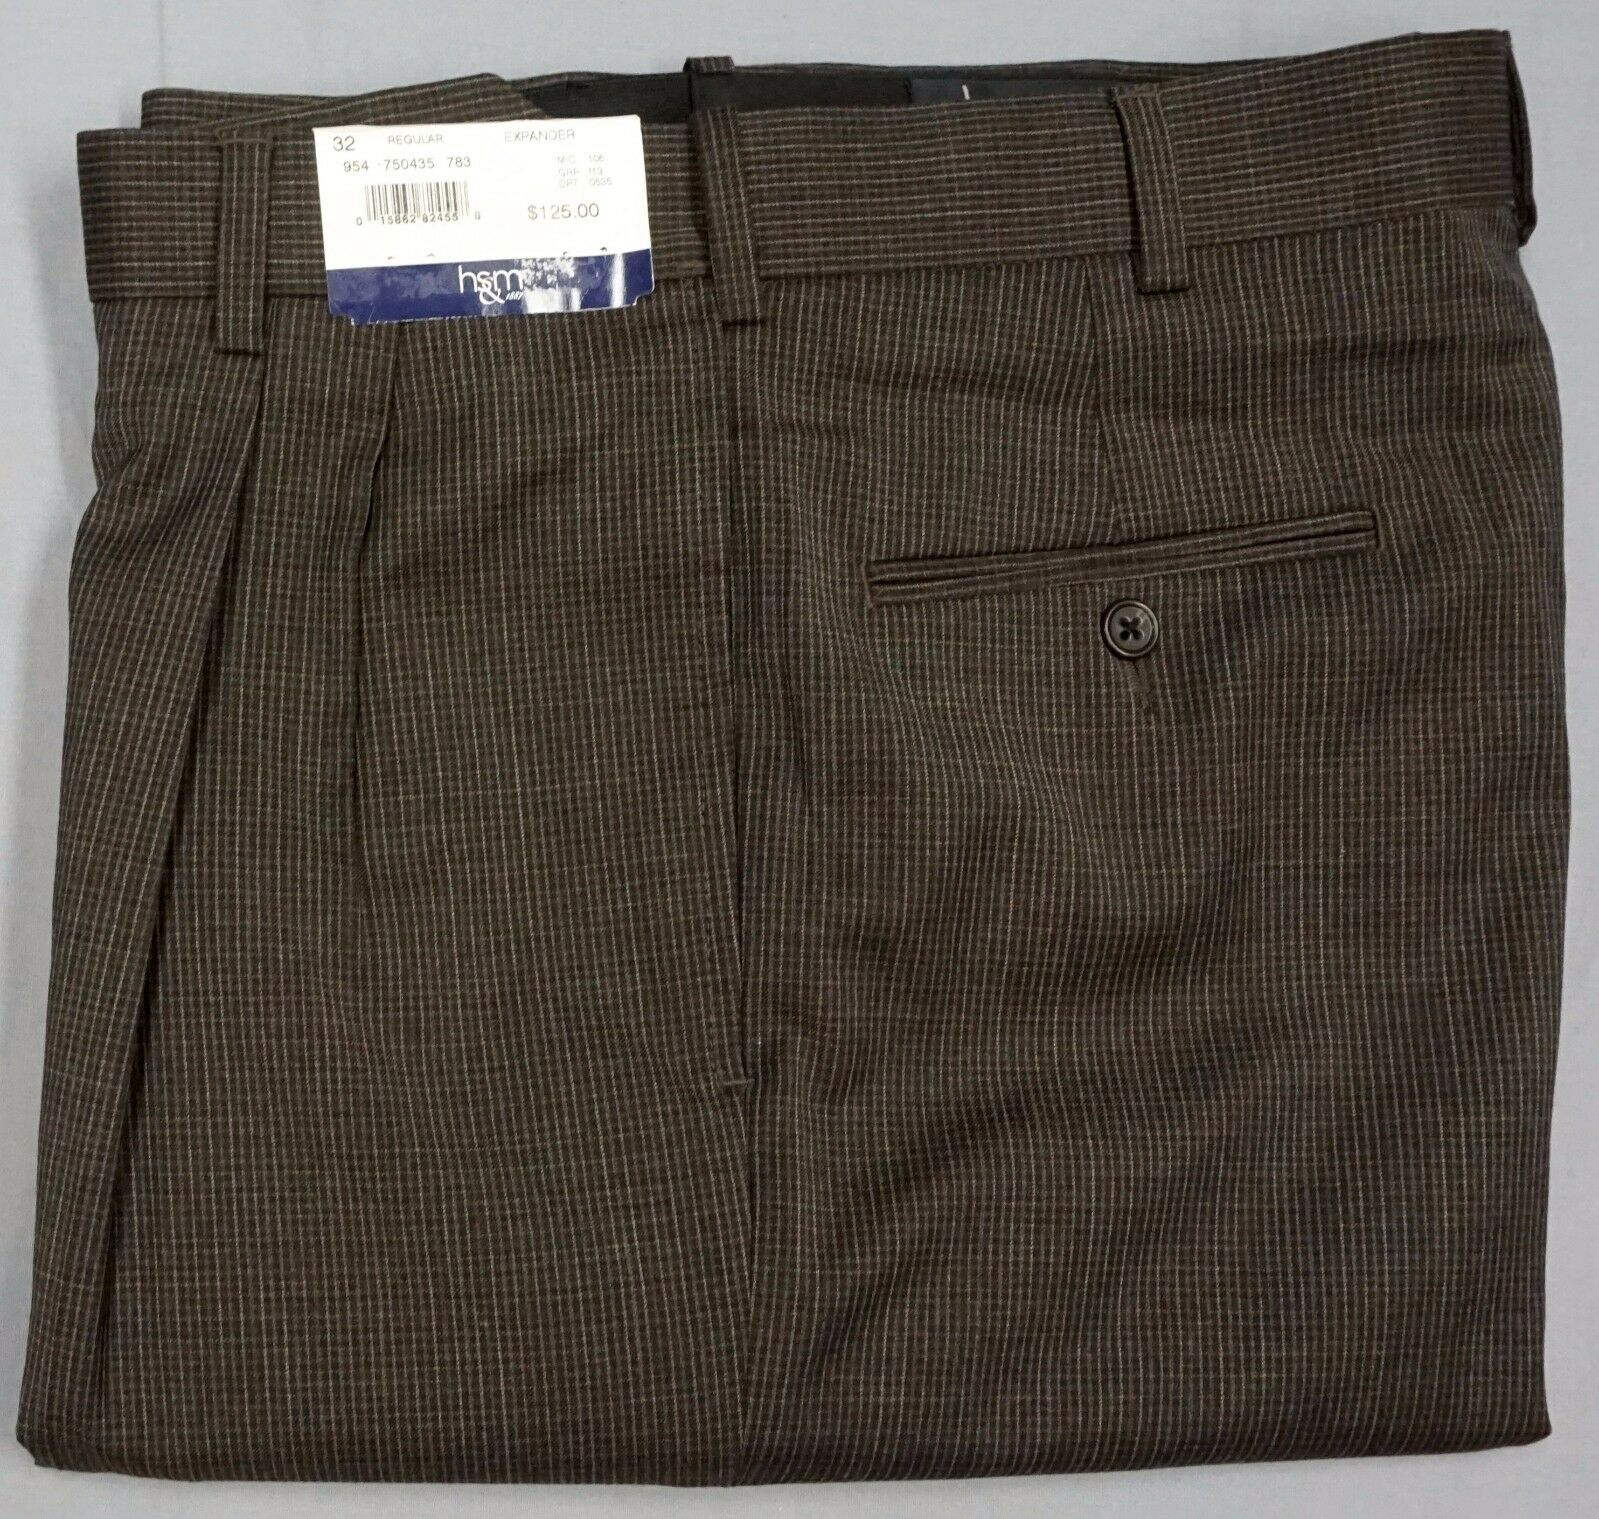 NWT  HART SCHAFFNER MARX EXPANDER PLAID BROWN DRESS PANTS PLEATED MENS 32R